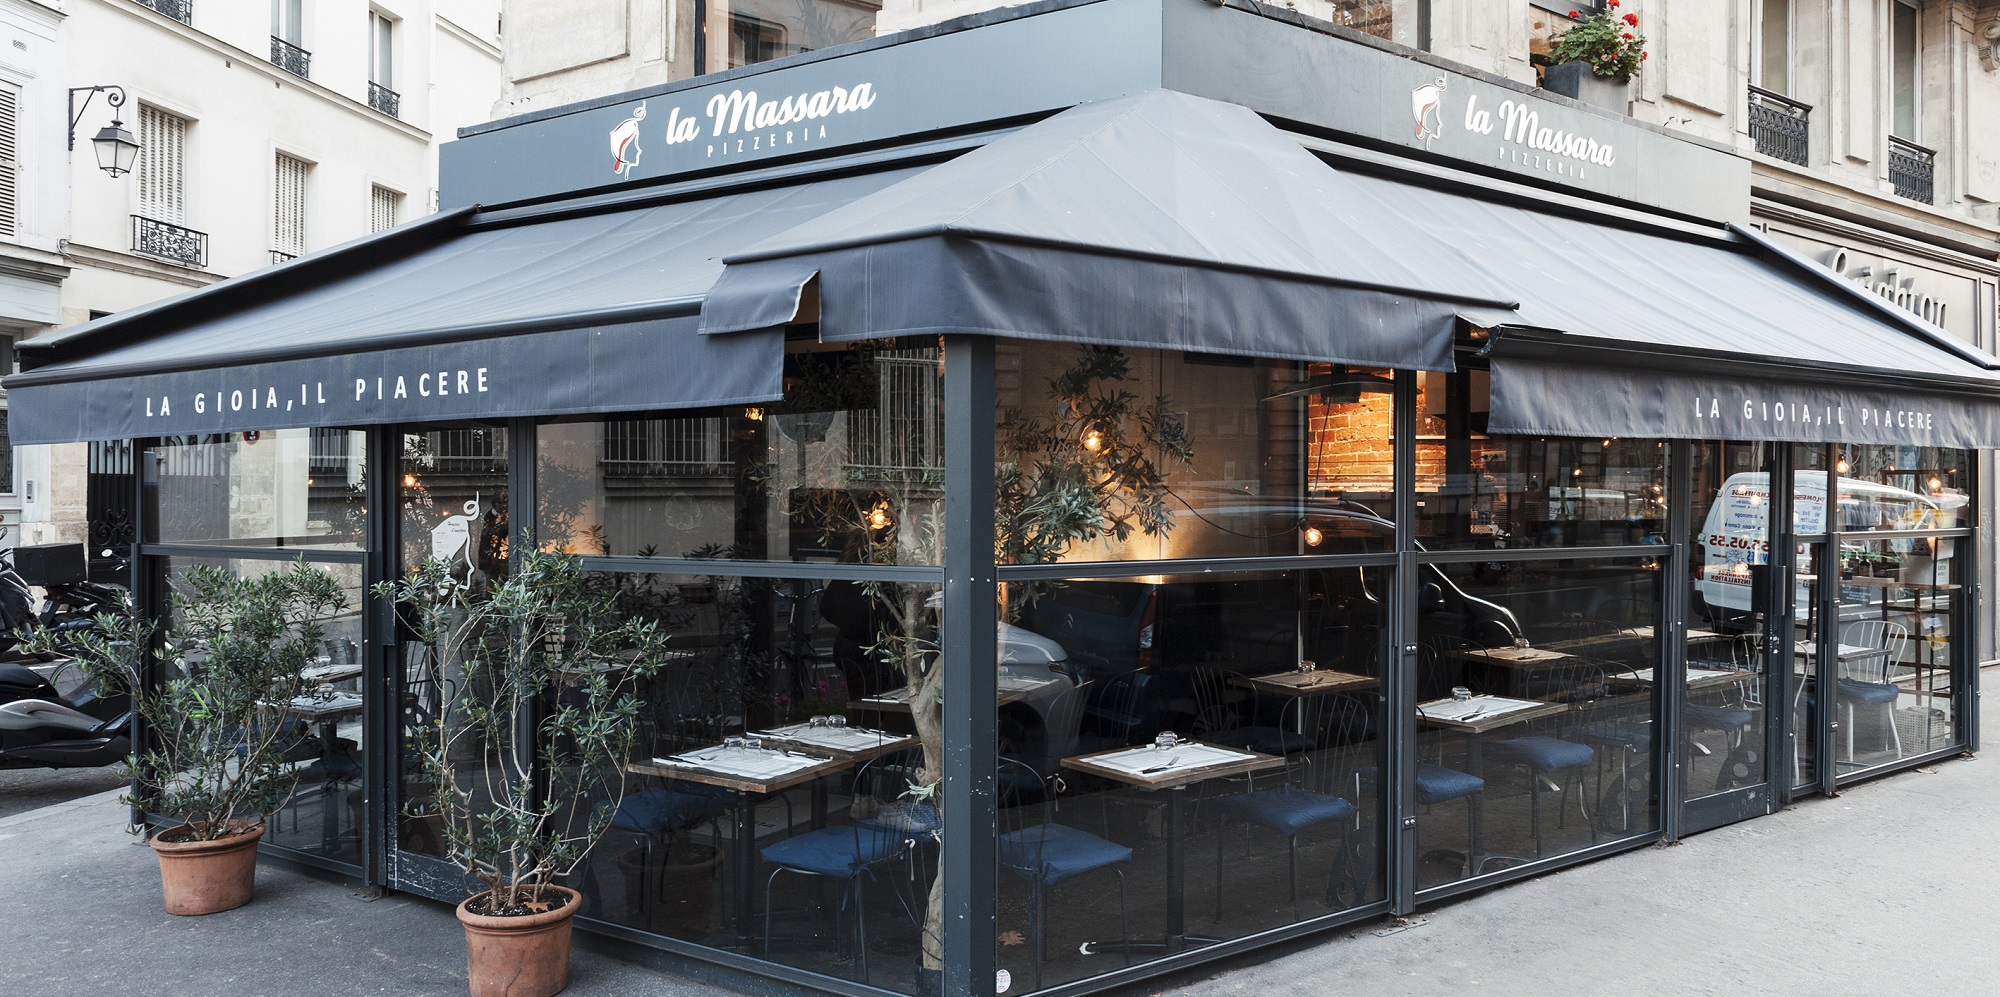 Brunch La Massara (75003 Paris)